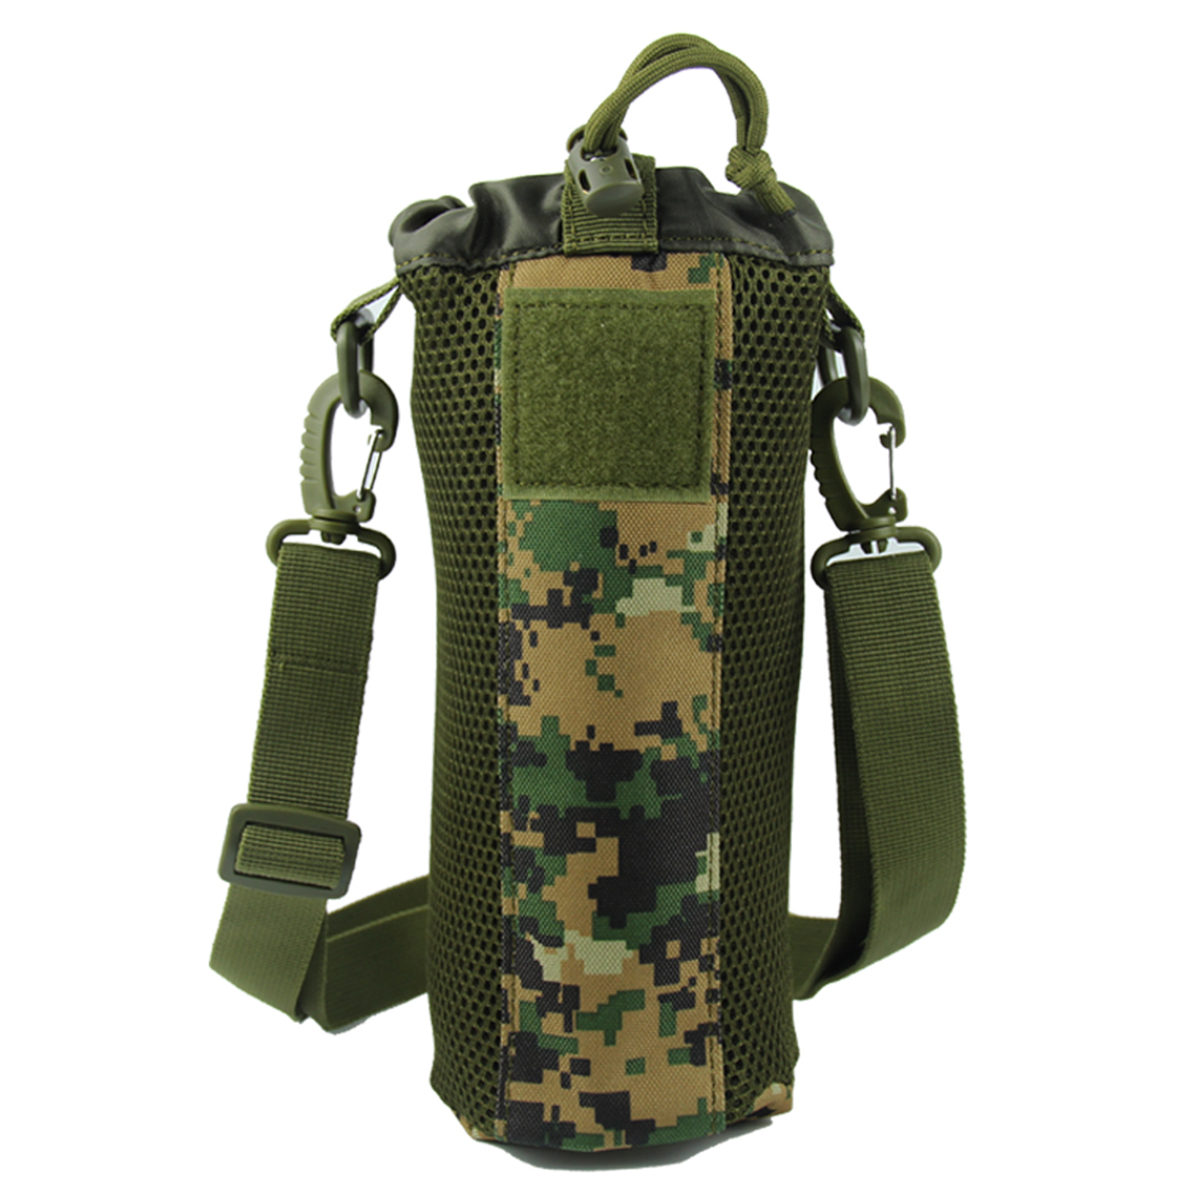 New Tactical Hiking Camping Water Bottle Holder Belt Carrier Pouch Nylon Bag One